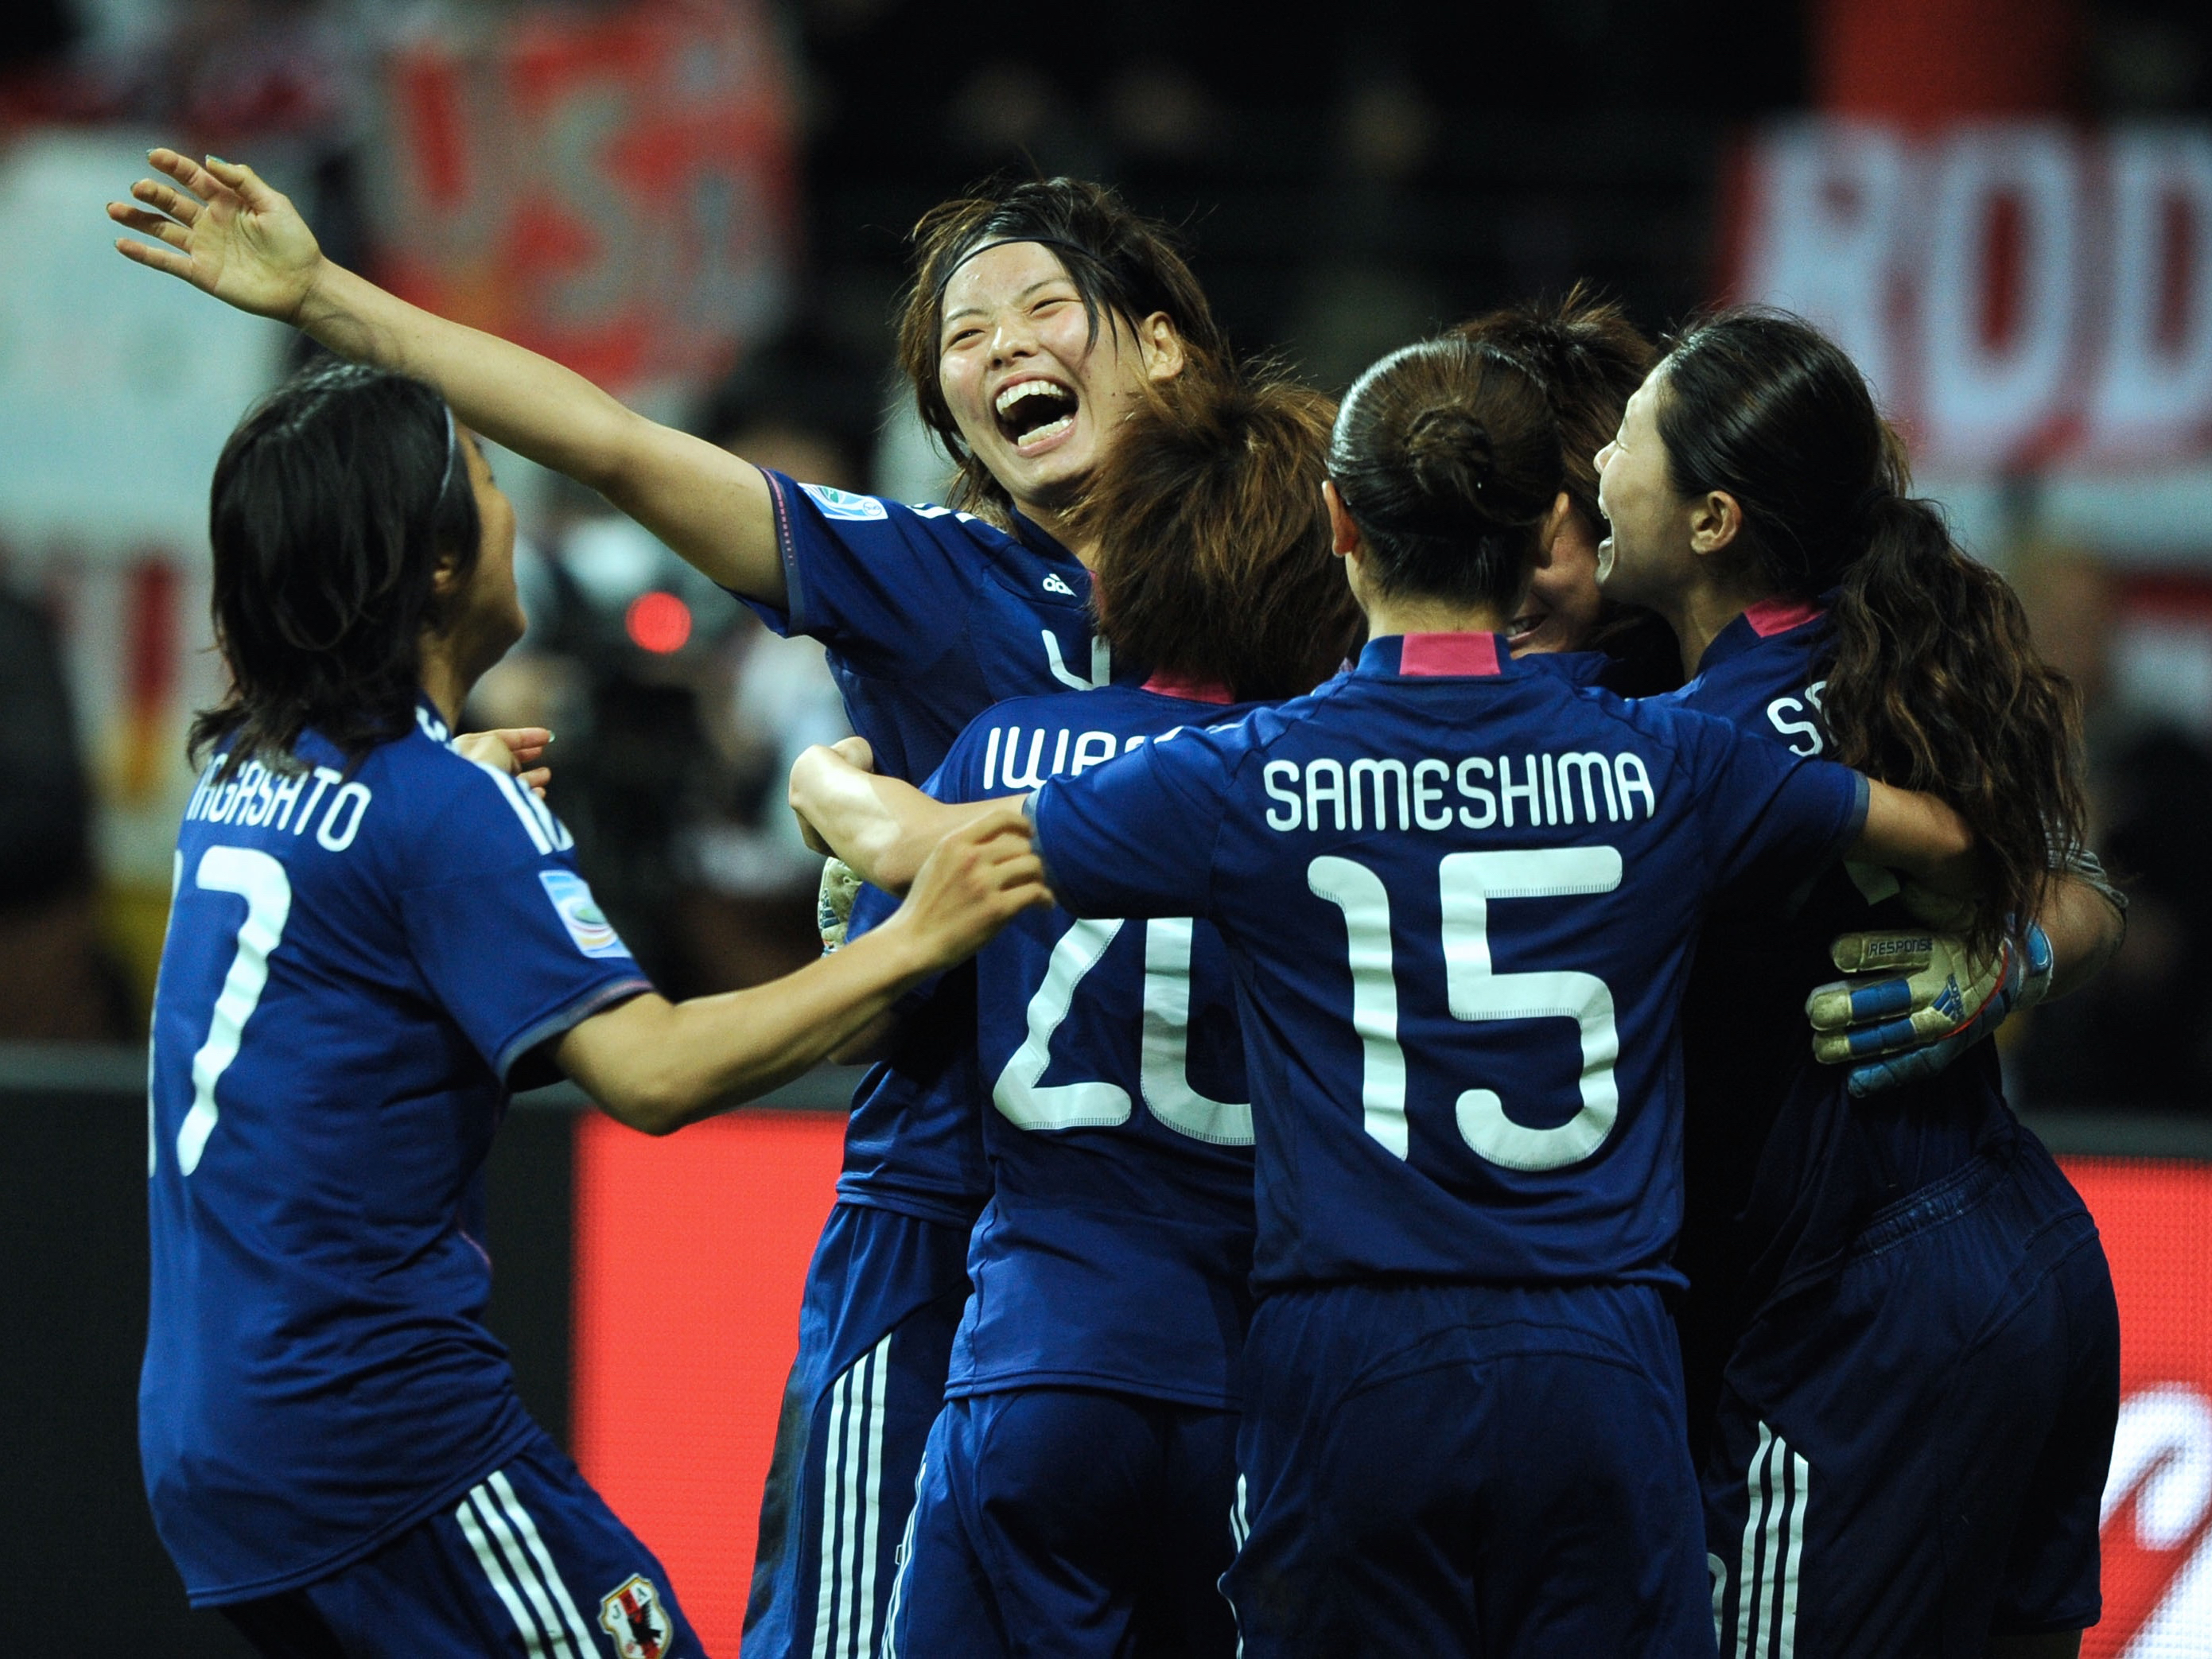 Germany Hesse Frankfurt am Main – FIFA Women's World Cup Germany 2011, final, Japan v USA 5:3 after penalty shootout – Saki Kumagai of Japan celebrating with her team-mates after scoring decisive pena